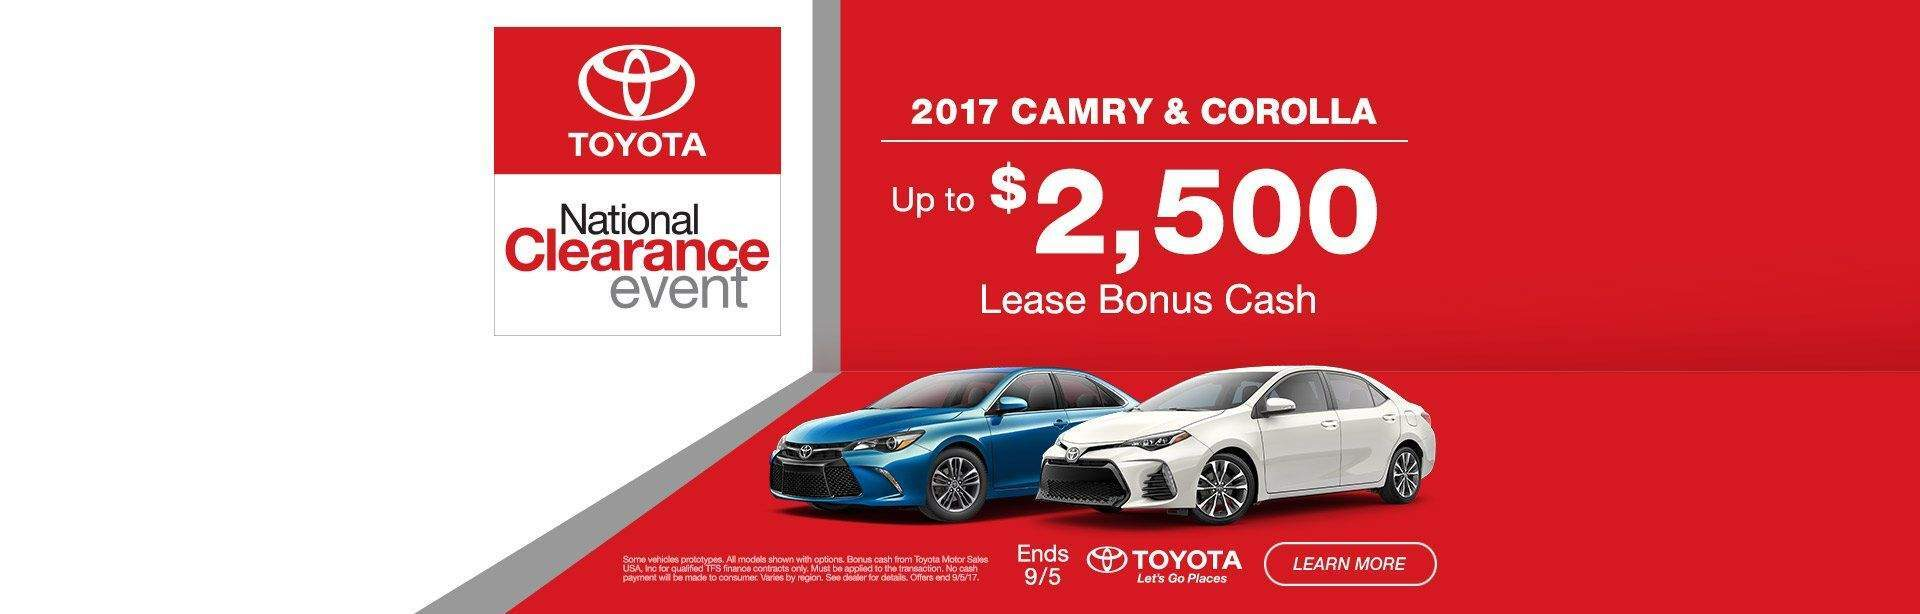 Camry/Corolla Clearance